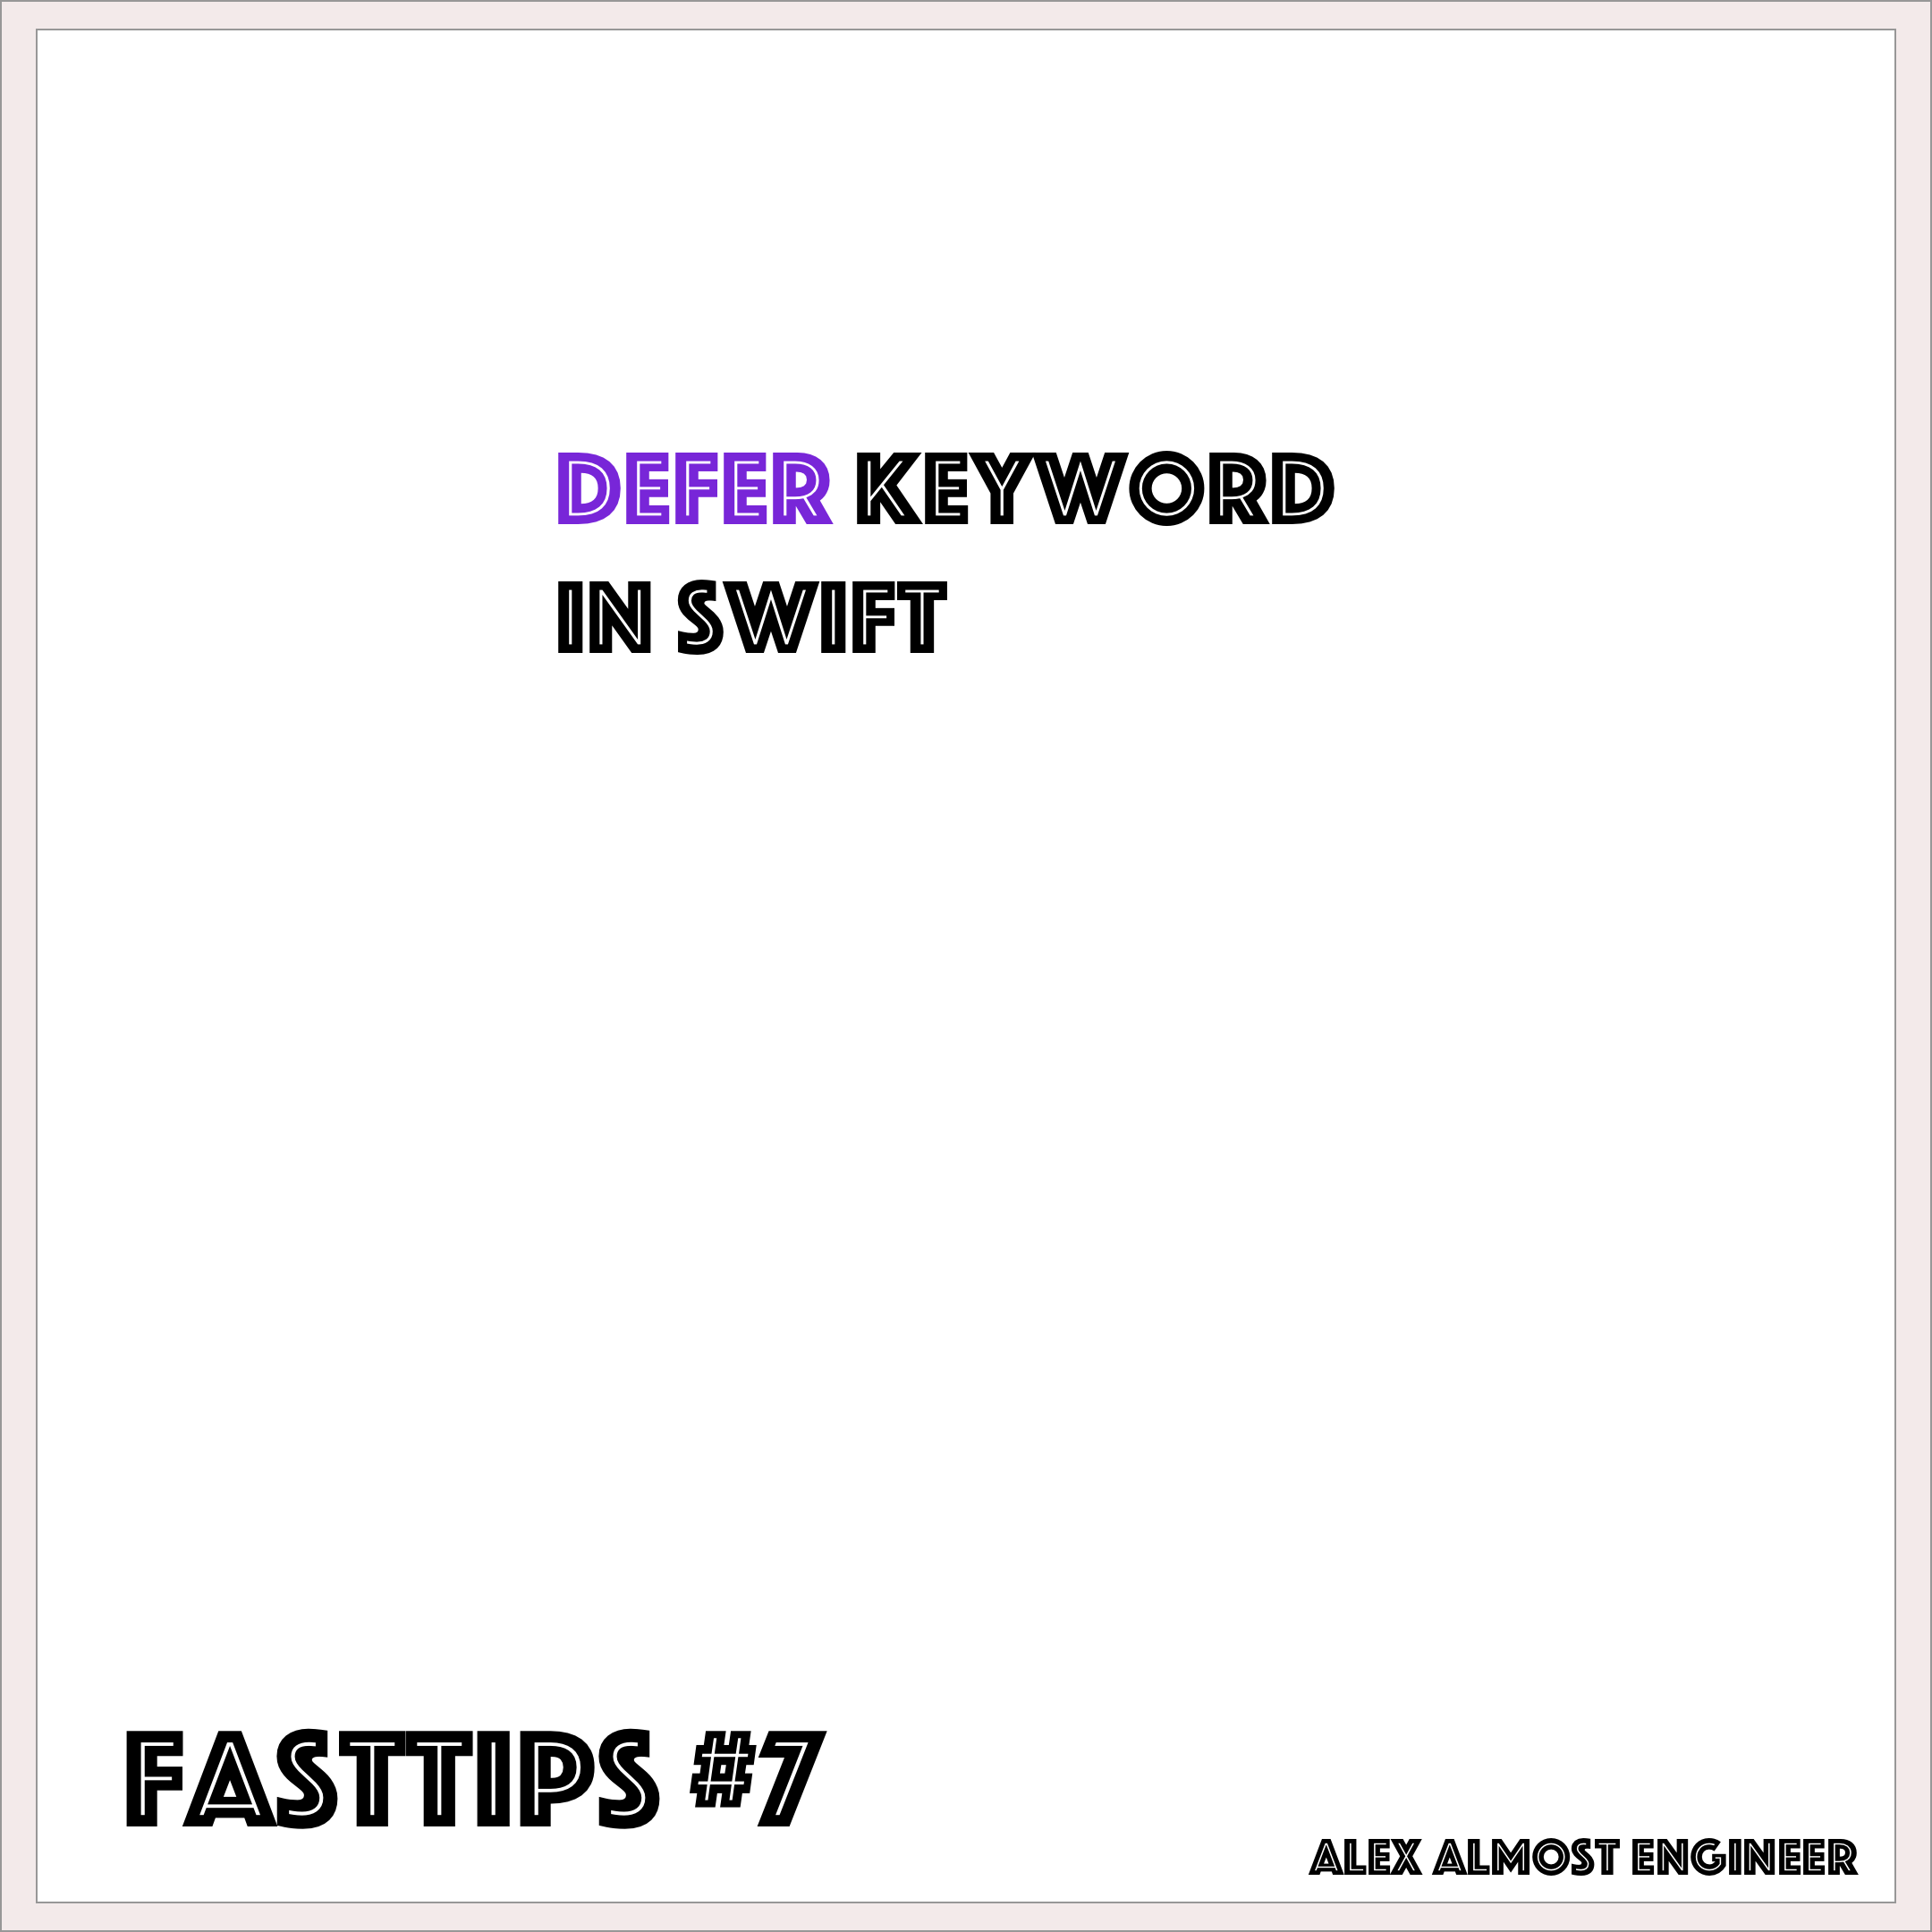 Defer keyword in Swift